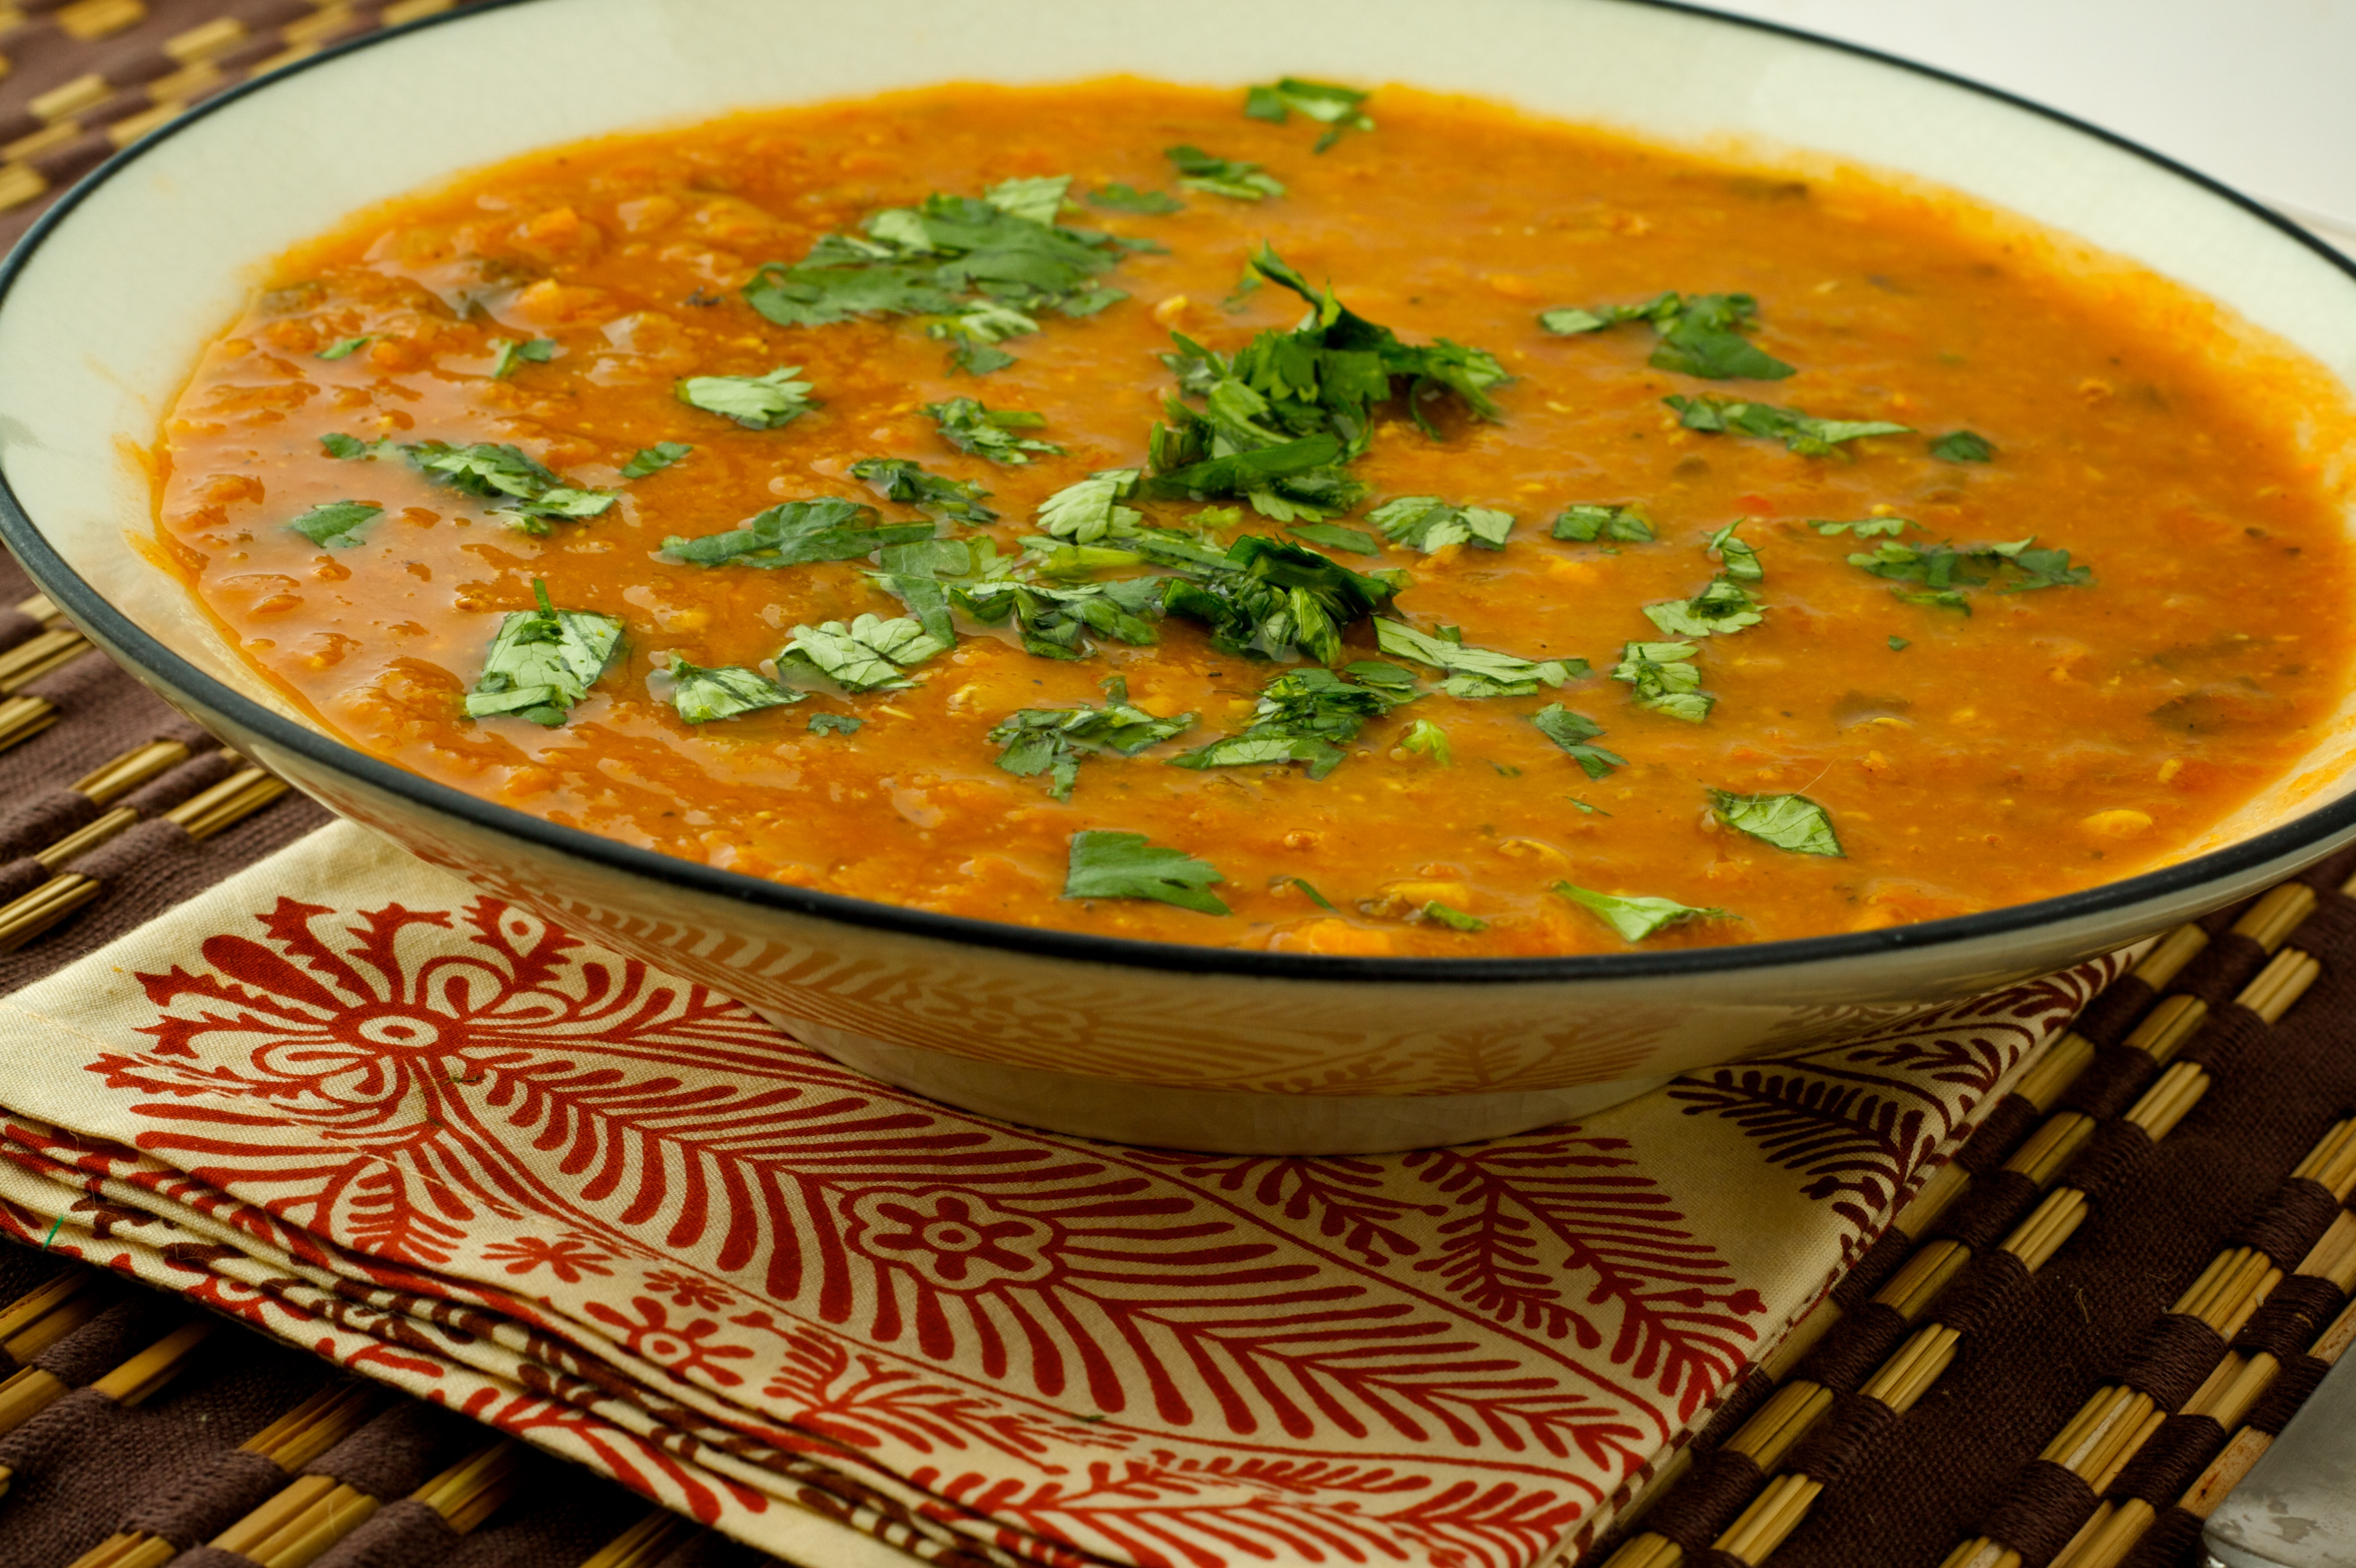 Bbc Good Food Spiced Carrot And Lentil Soup